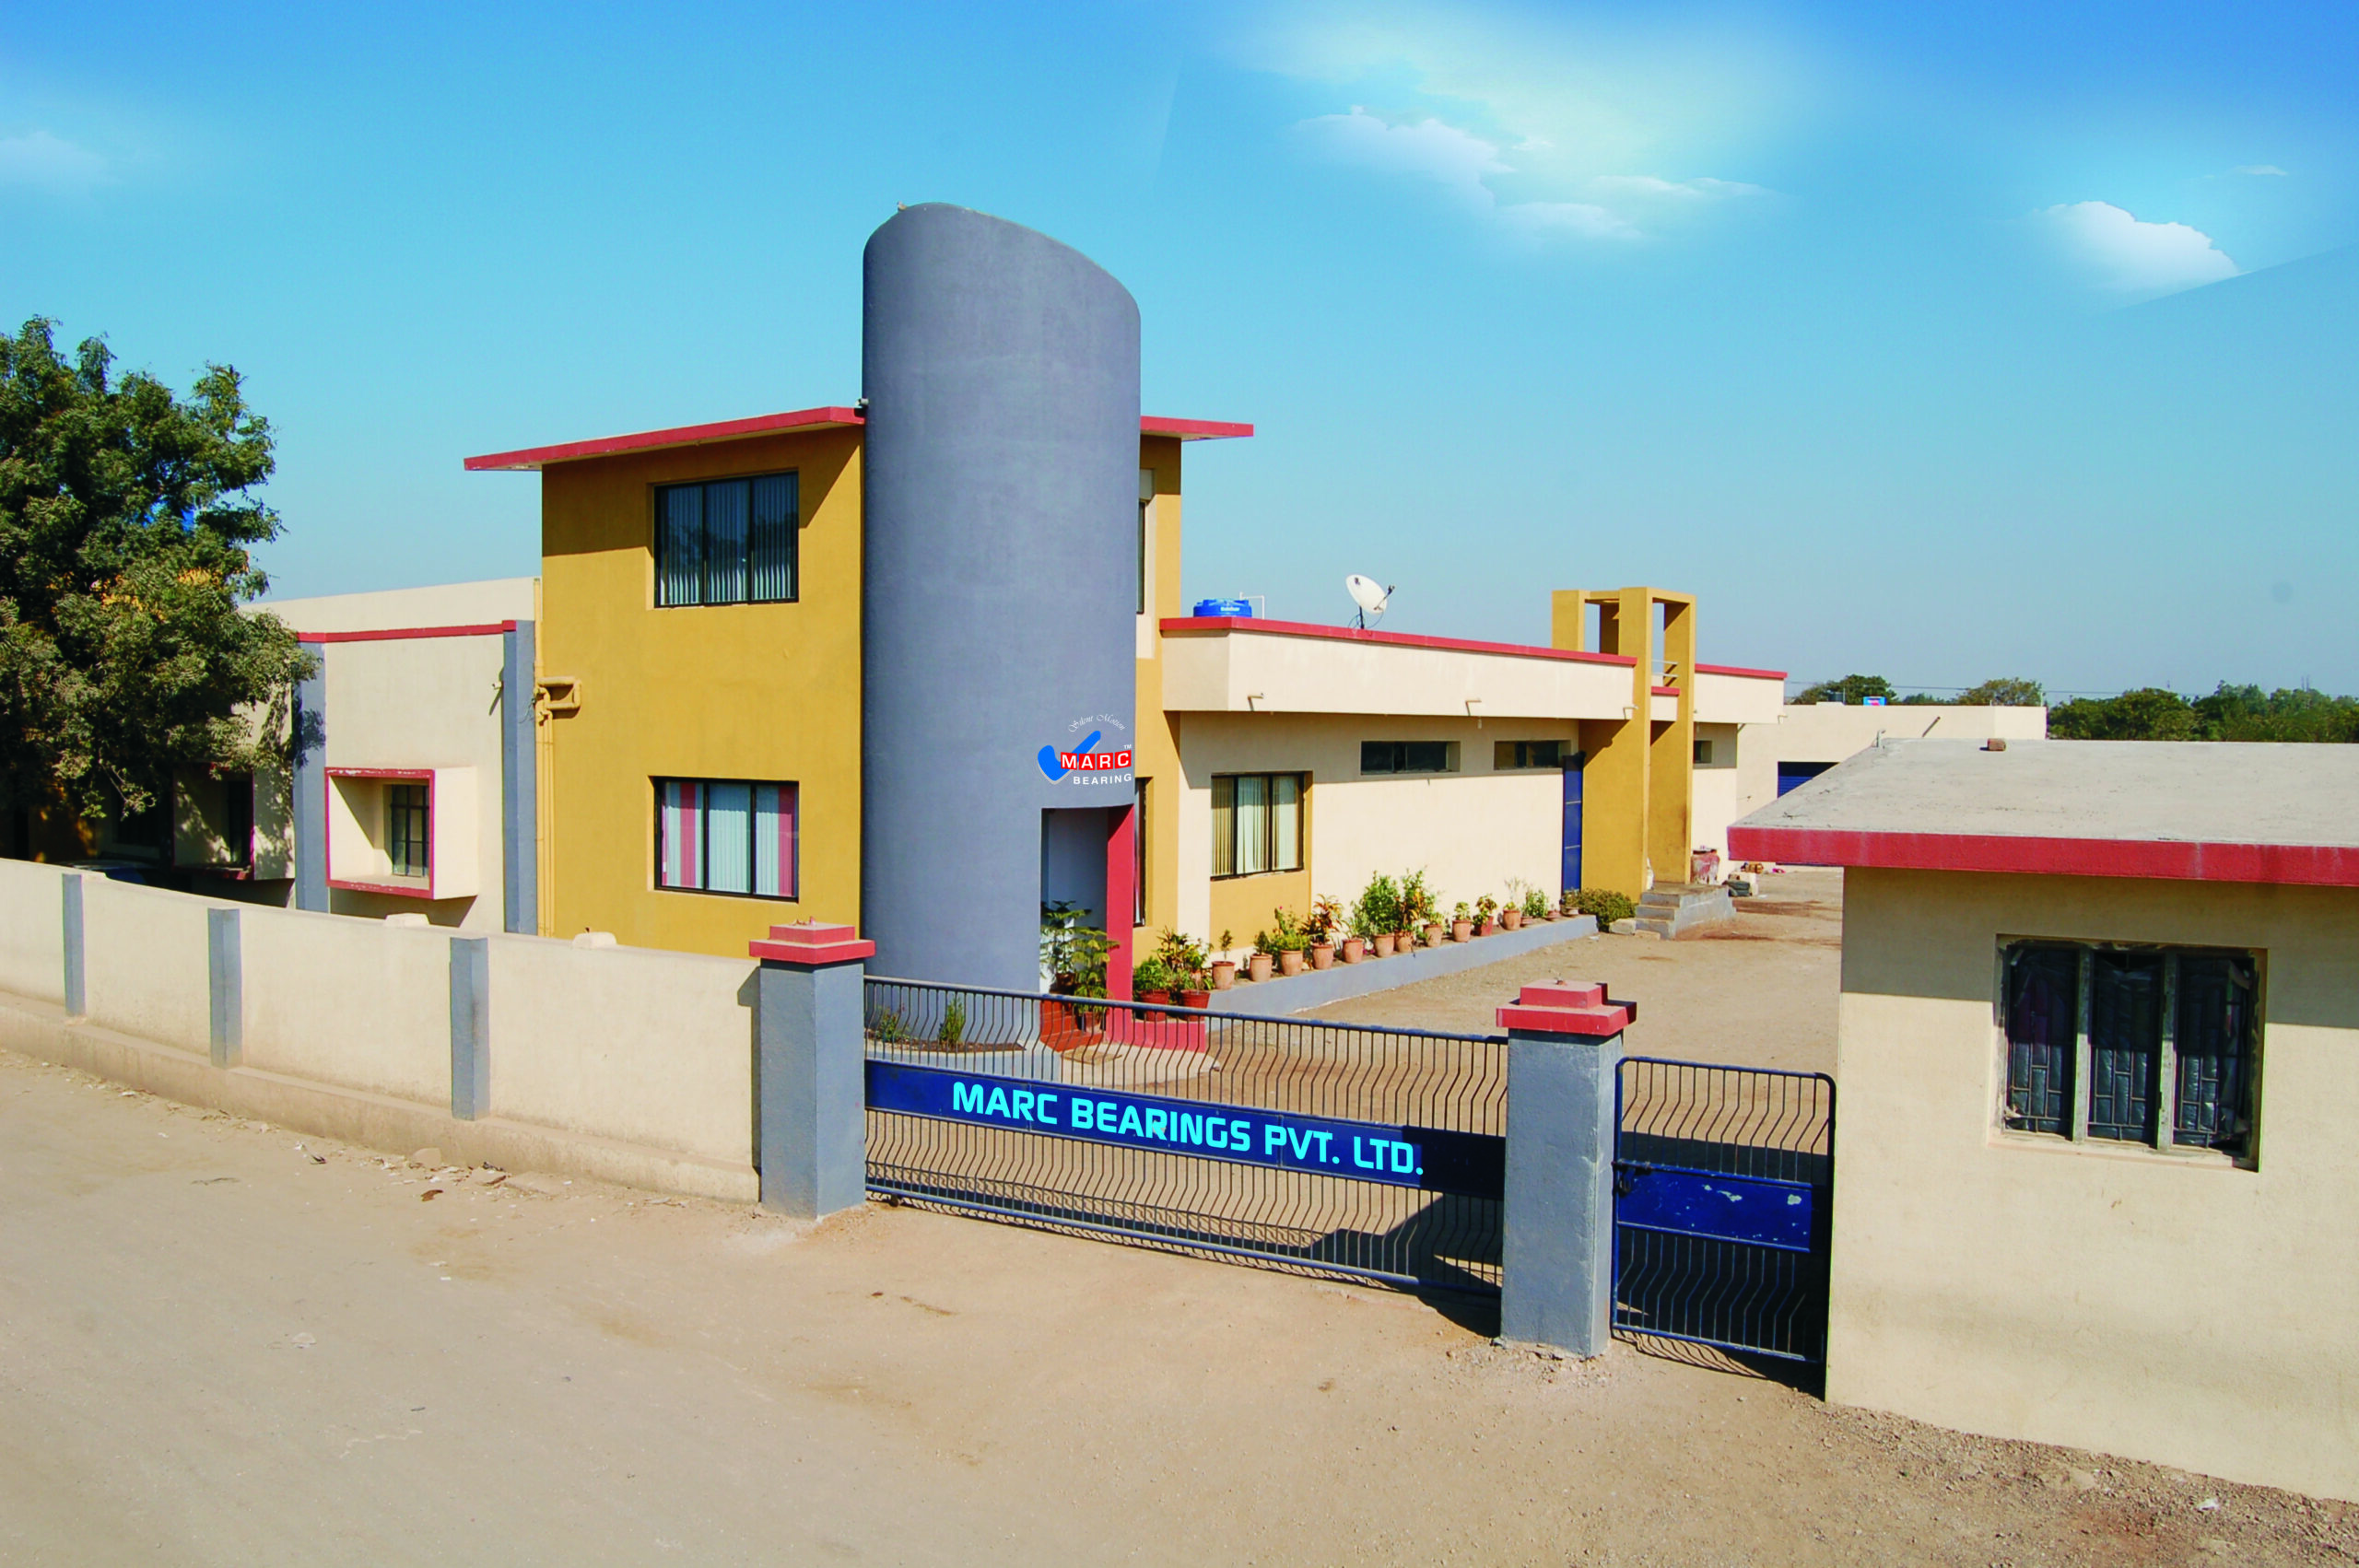 Infrastructure - Marc Bearings Pvt. Ltd. - India -01